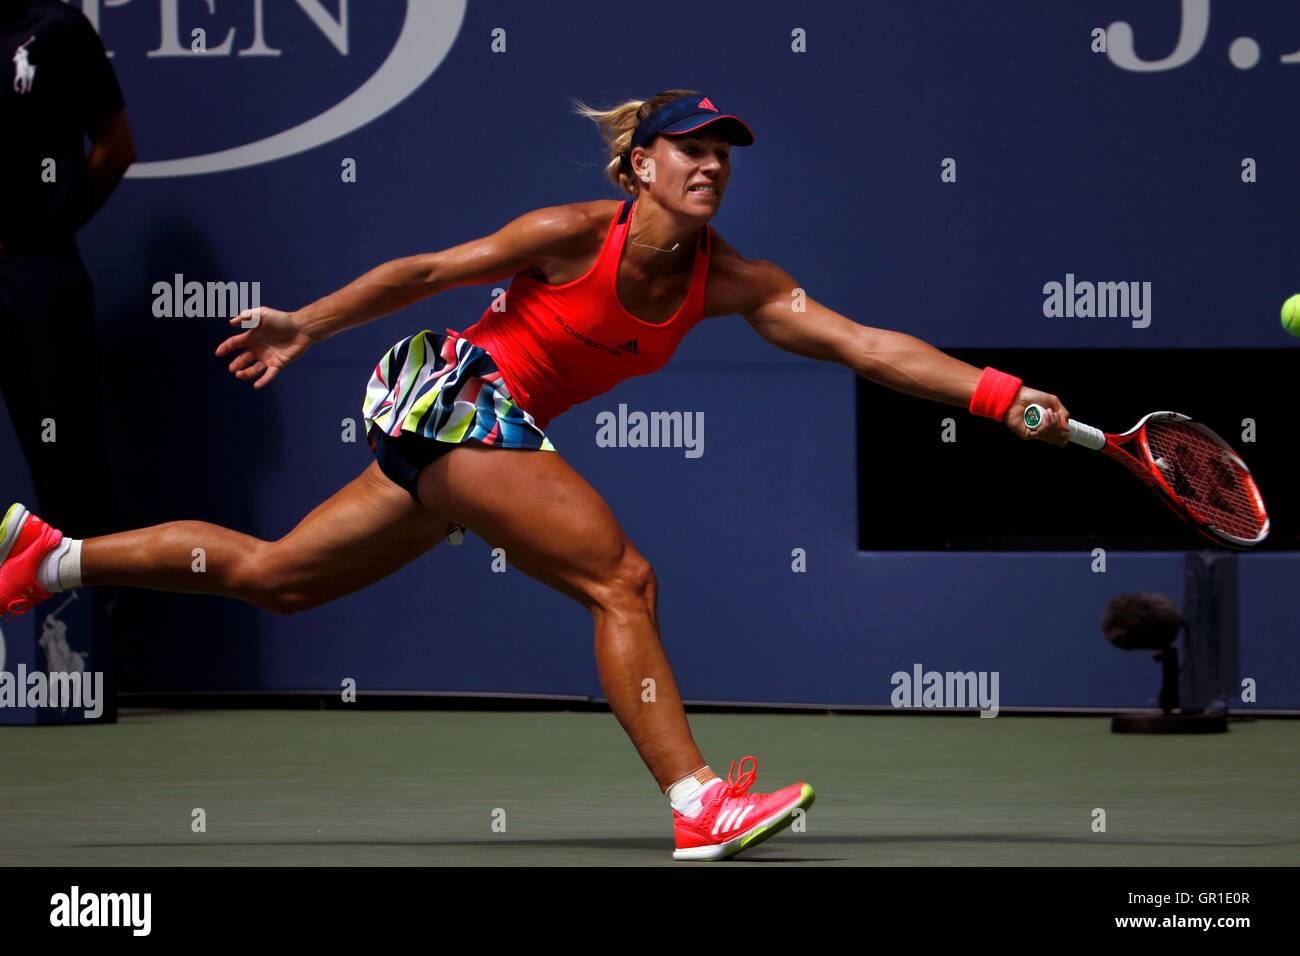 New York, USA. 6th September, 2016. Number 2 seed, Angelique Kerber of Germany during her quarter final match against - Stock Image